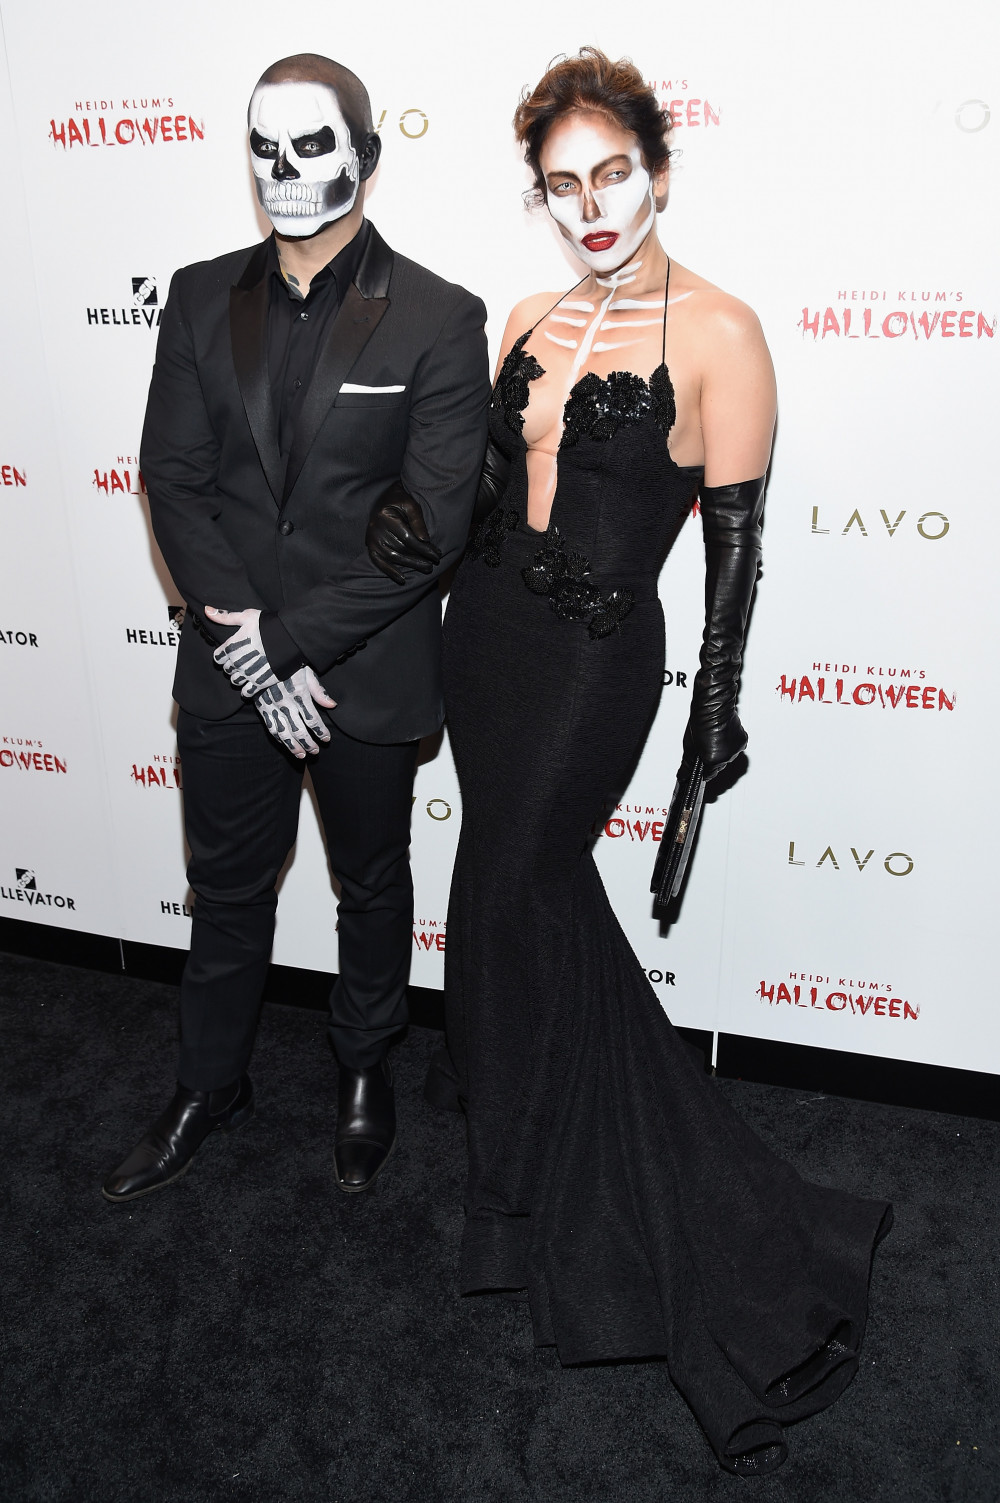 NEW YORK NY - OCTOBER 31 Casper Smart and Jennifer Lopez attend Heidi Klumu0027s  sc 1 st  Mariam Adeyemi Blog & Scary Halloween Costumes from your fave Celebs | Jennifer Lopez ...